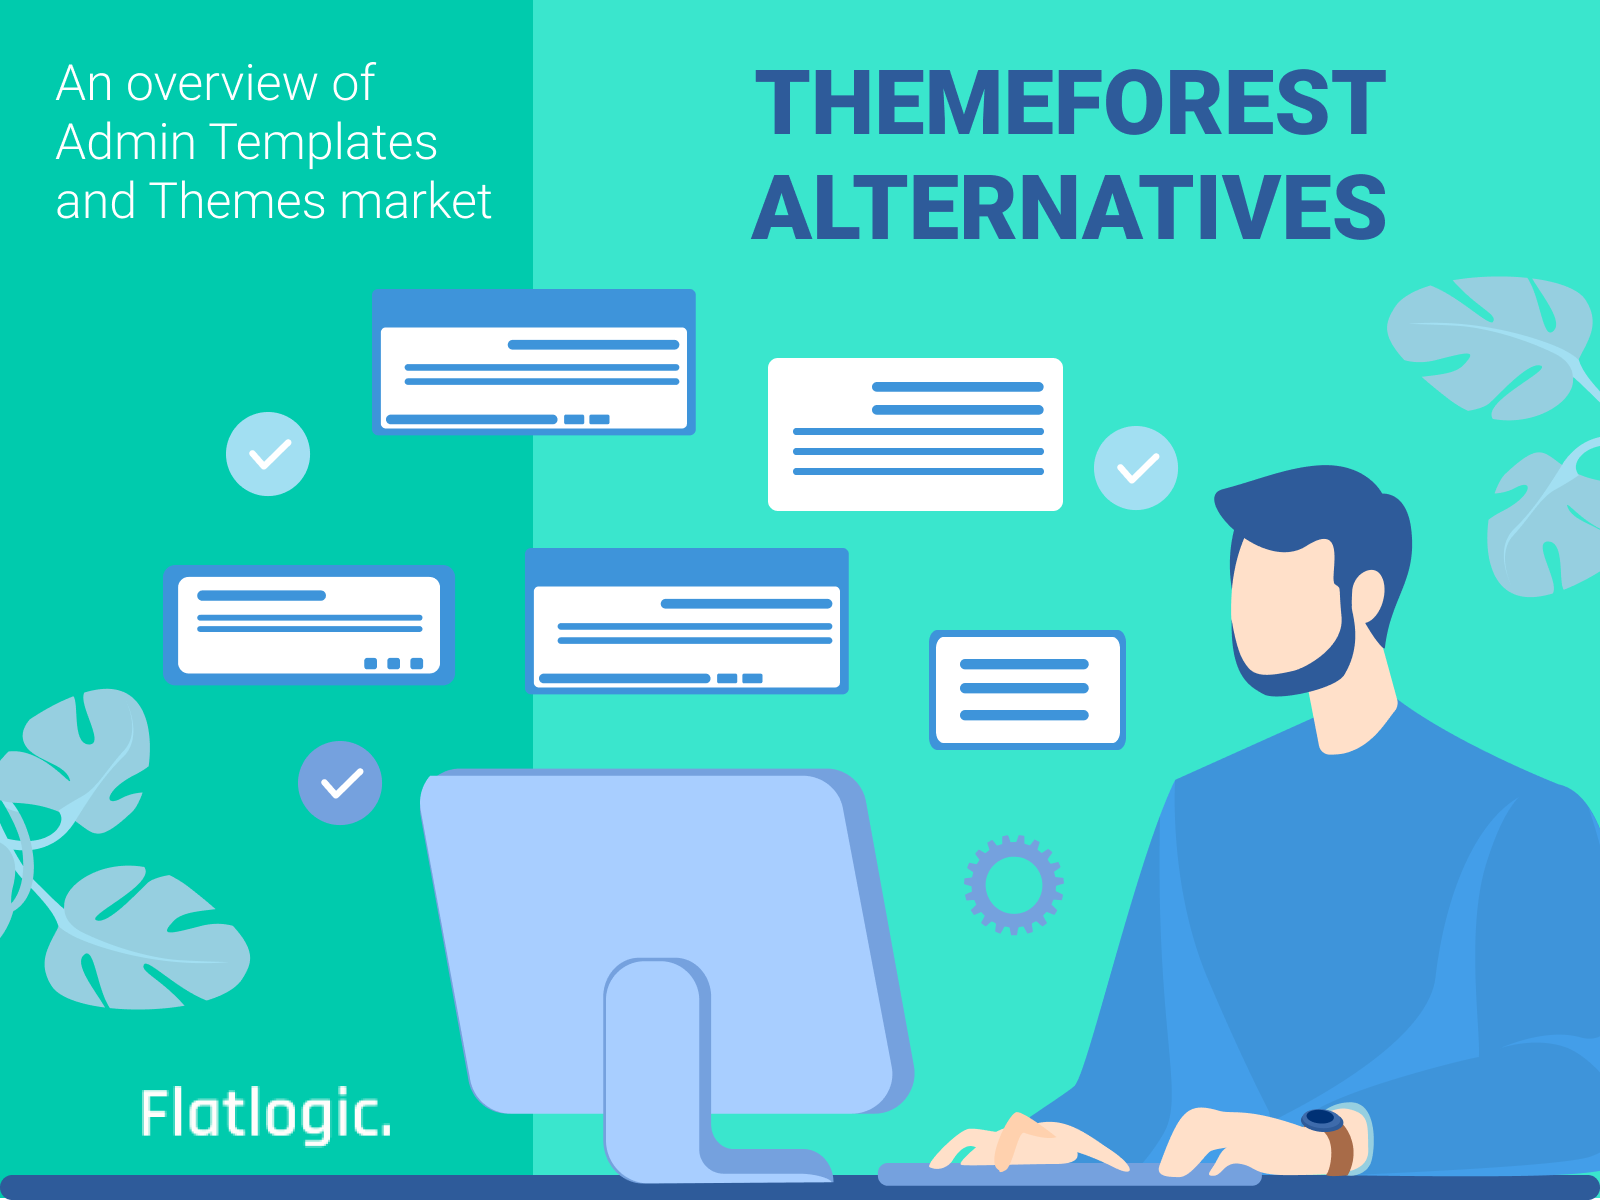 Best Themeforest Alternatives. An overview of Admin Templates and Themes market